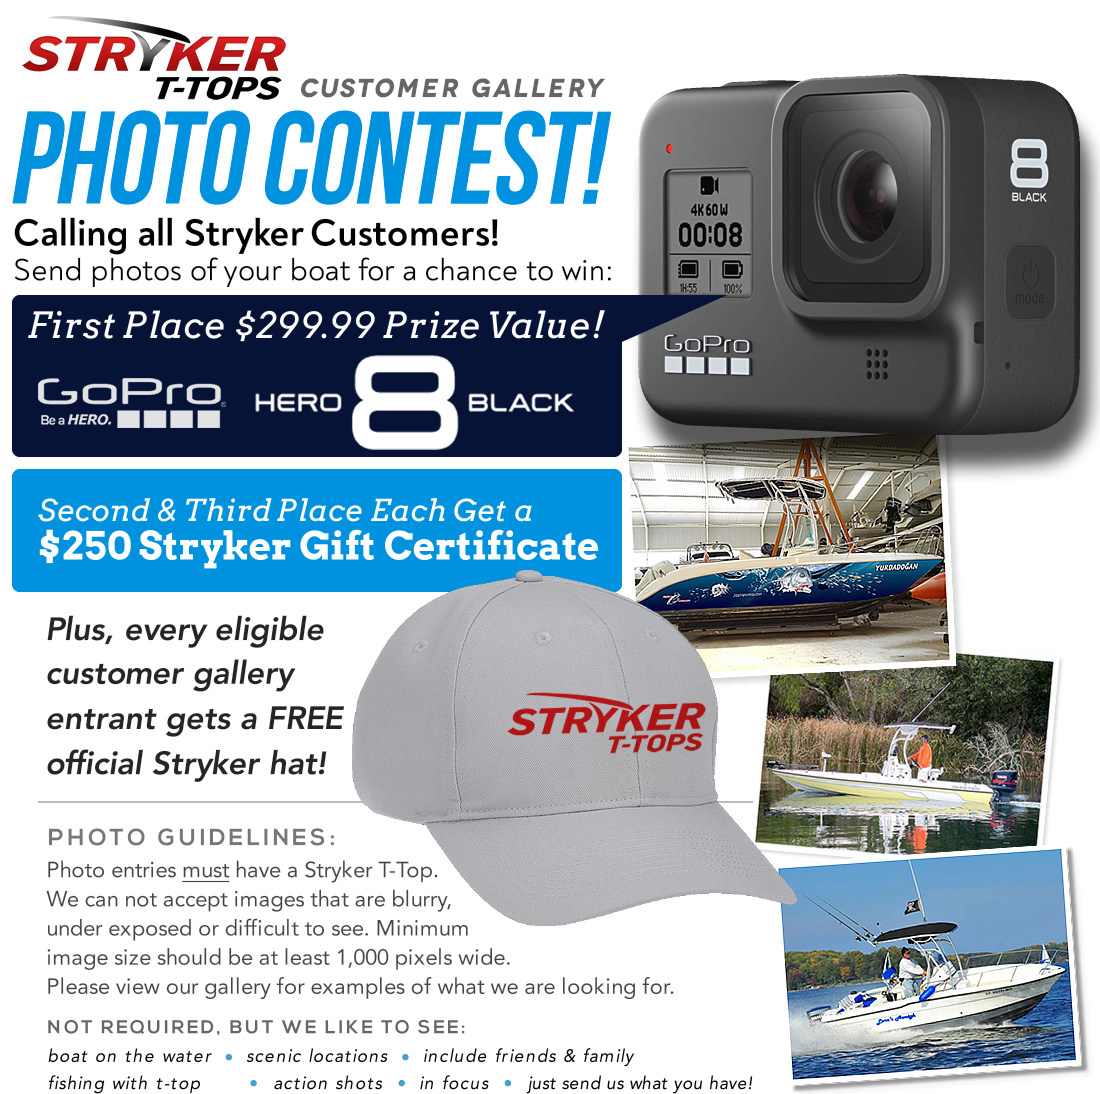 Send your boat photos to add to the Stryker T-Tops photo gallery